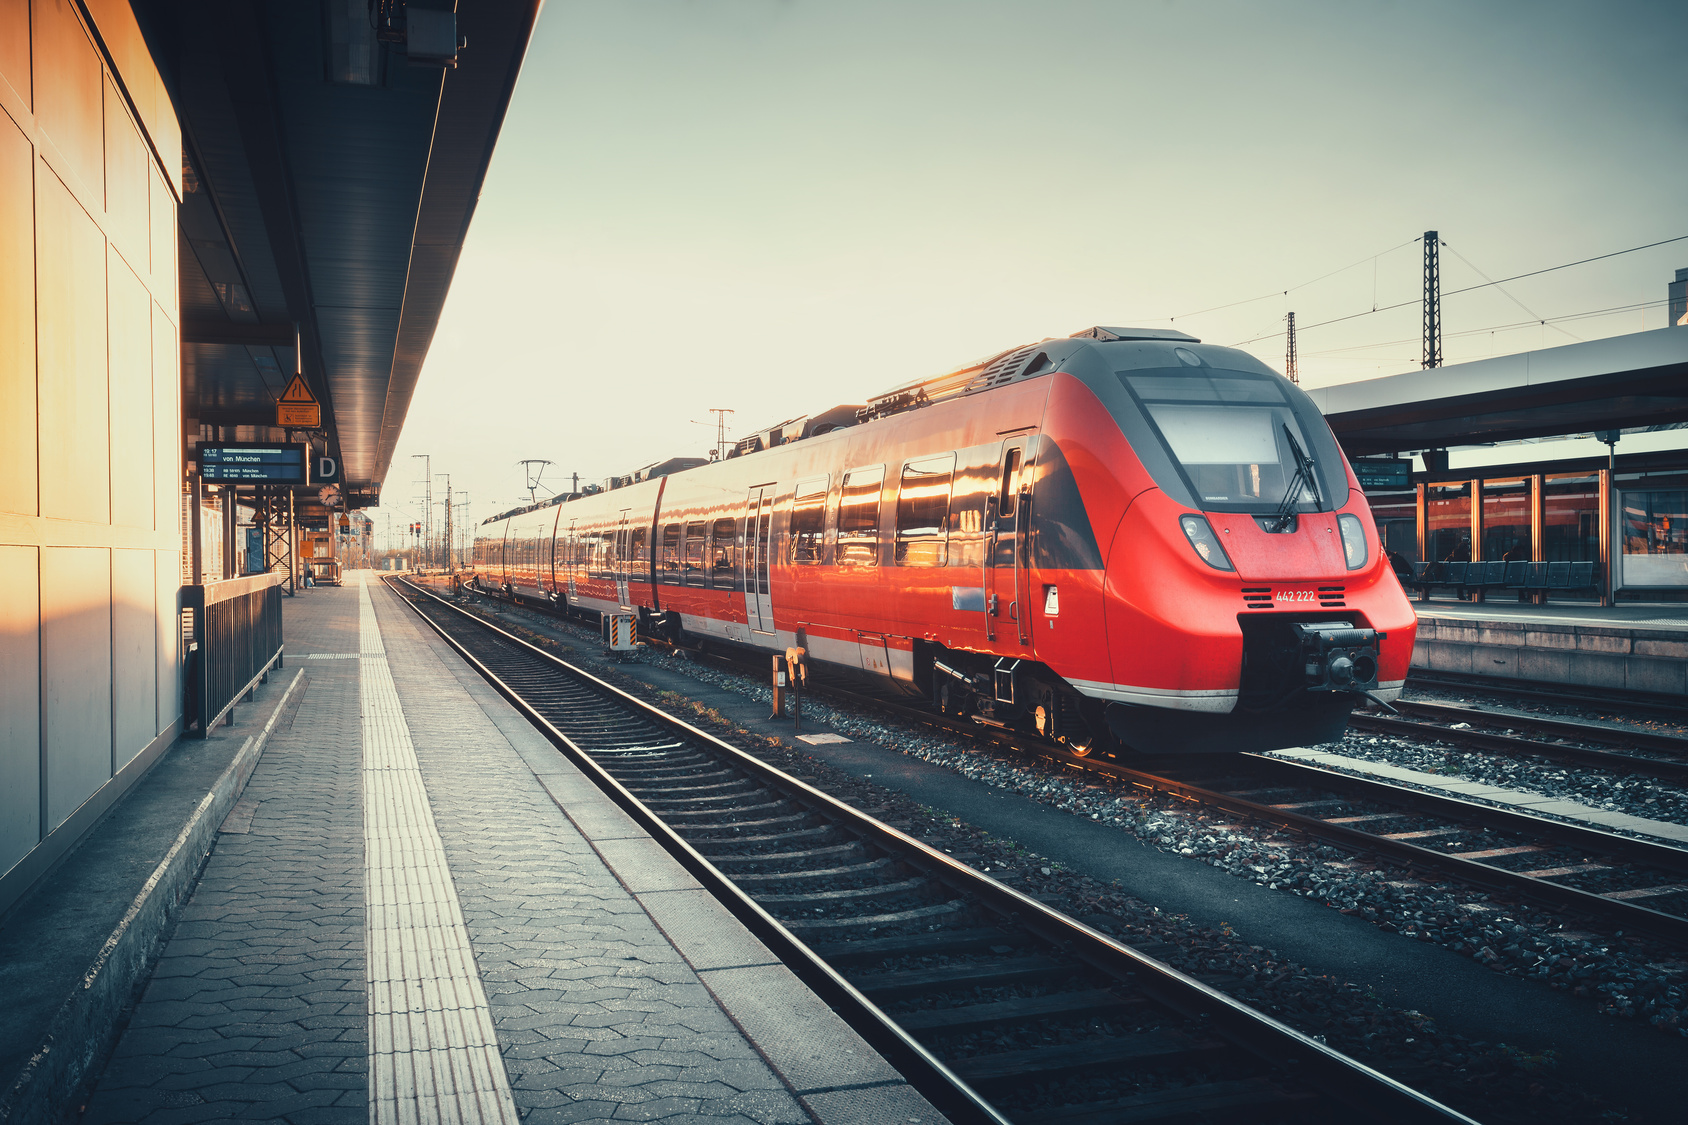 Beautiful railway station with modern red commuter train at colorful sunset in Nuremberg, Germany. Railroad with vintage toning